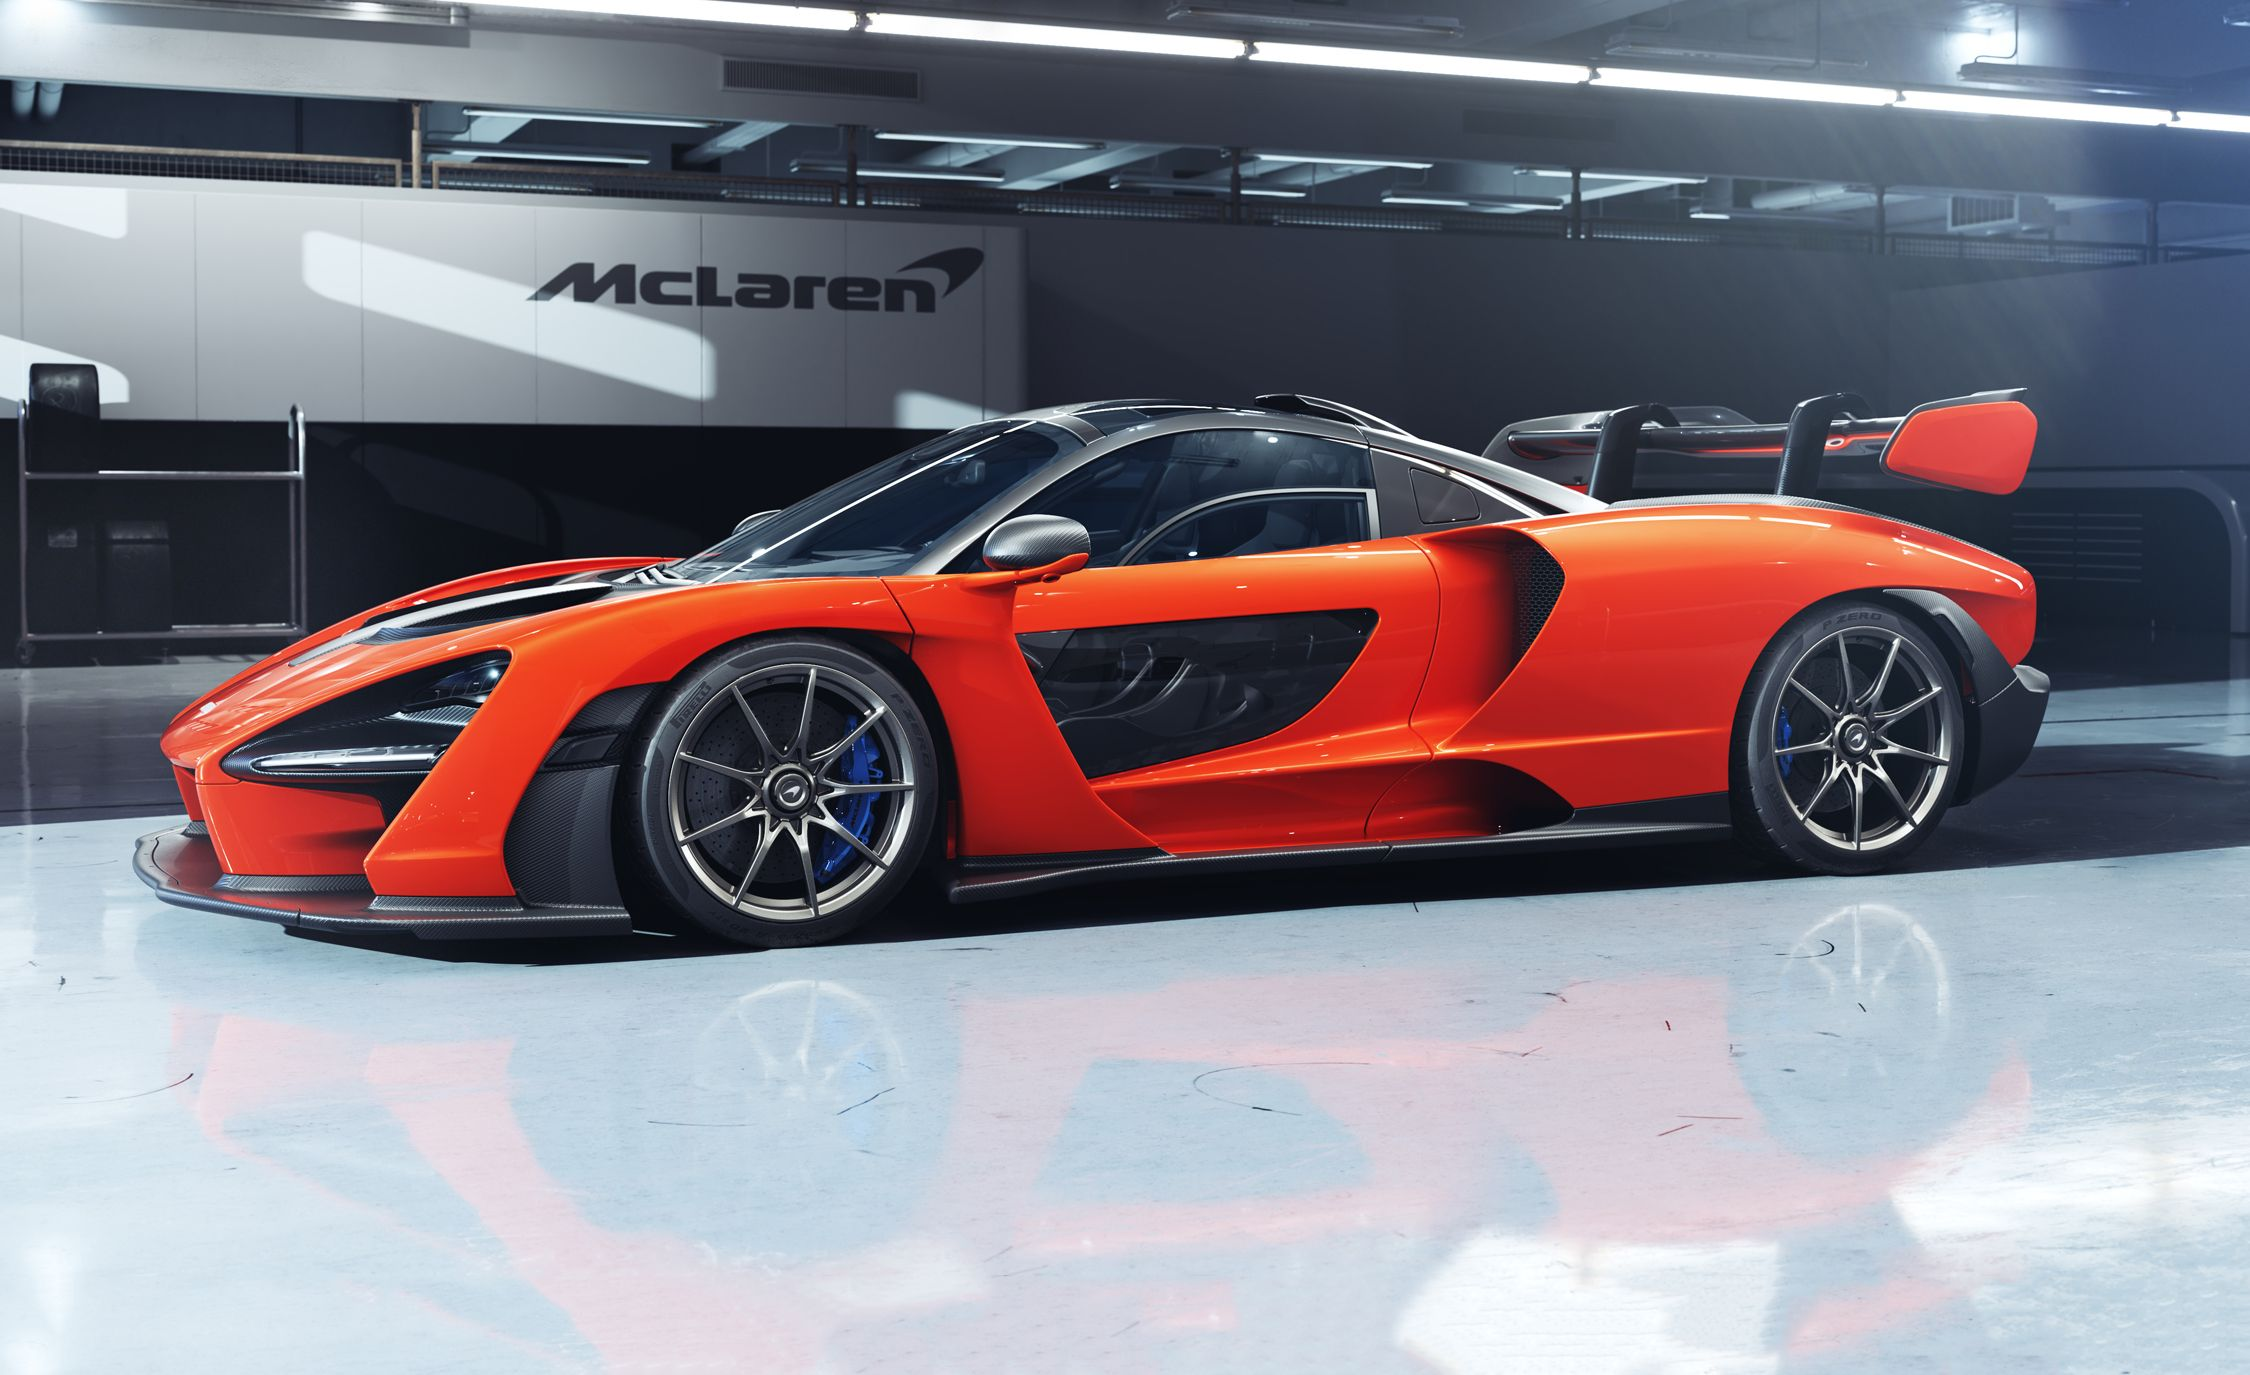 Mclaren Senna It Certainly Has A Name To Live Up To